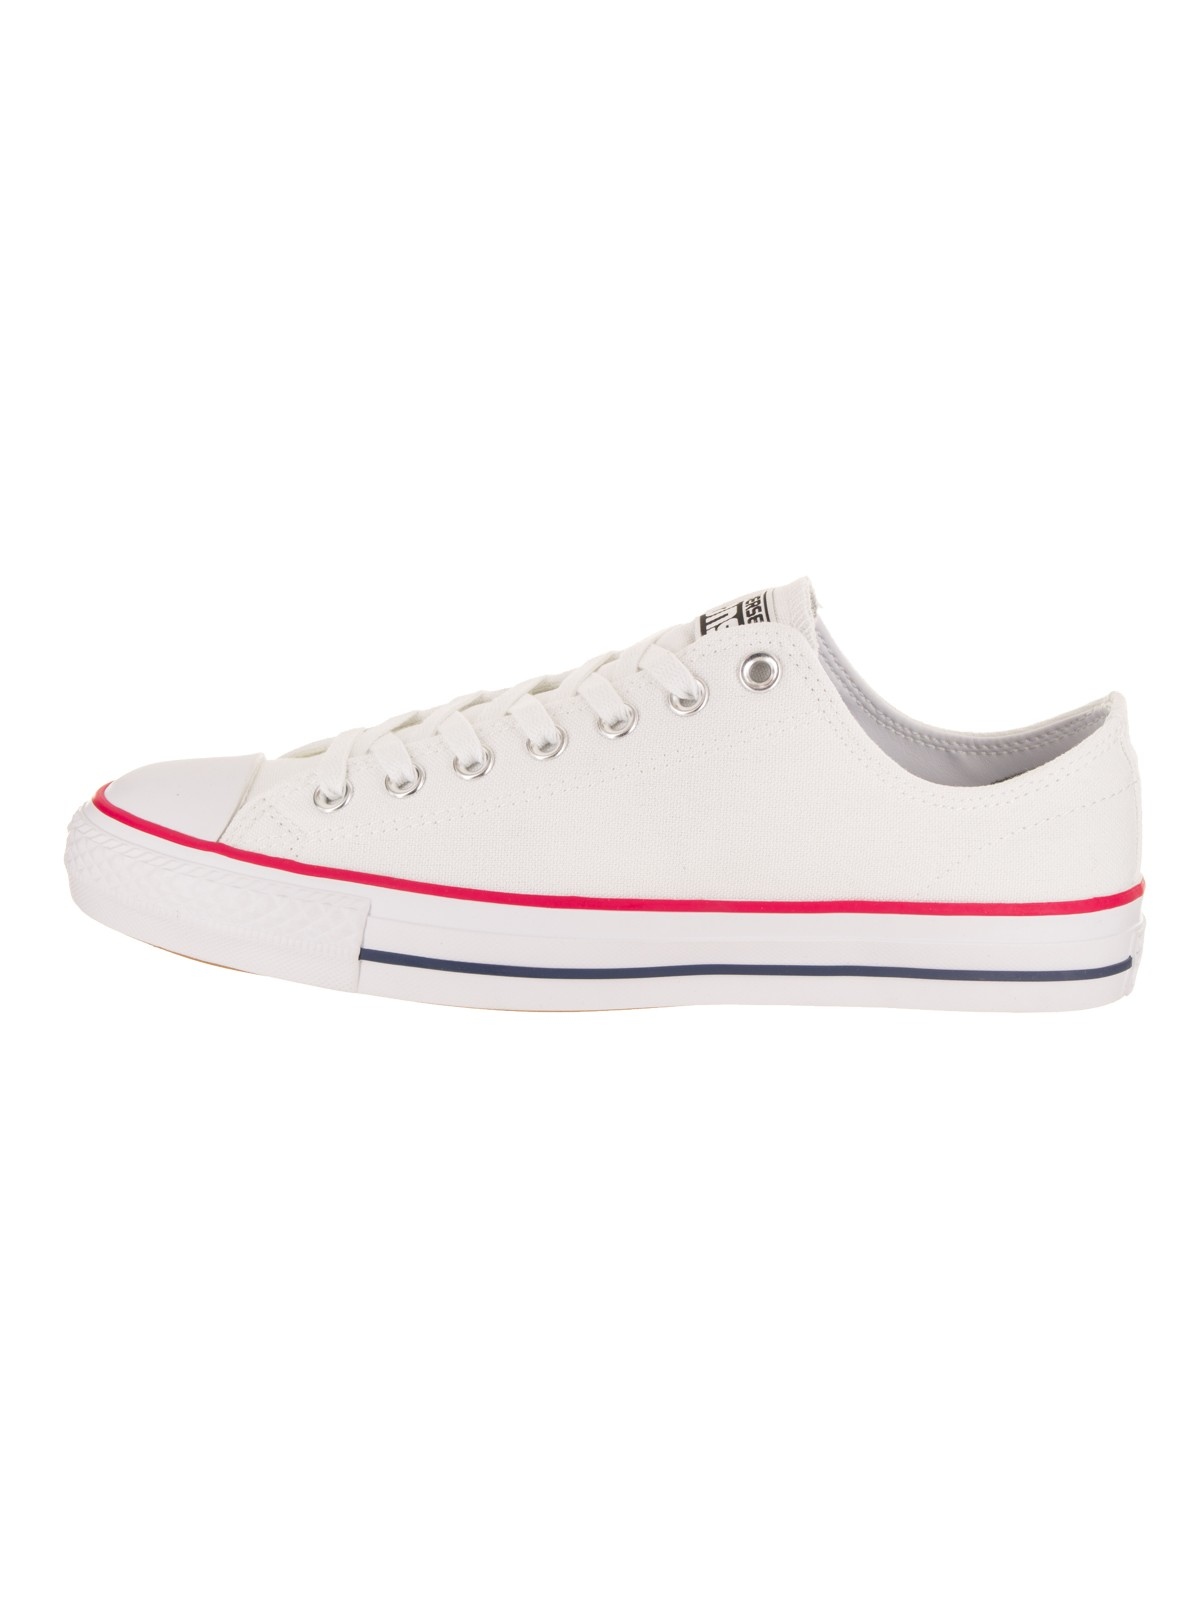 Converse Unisex Chuck Taylor All Star Pro Ox Basketball Shoe